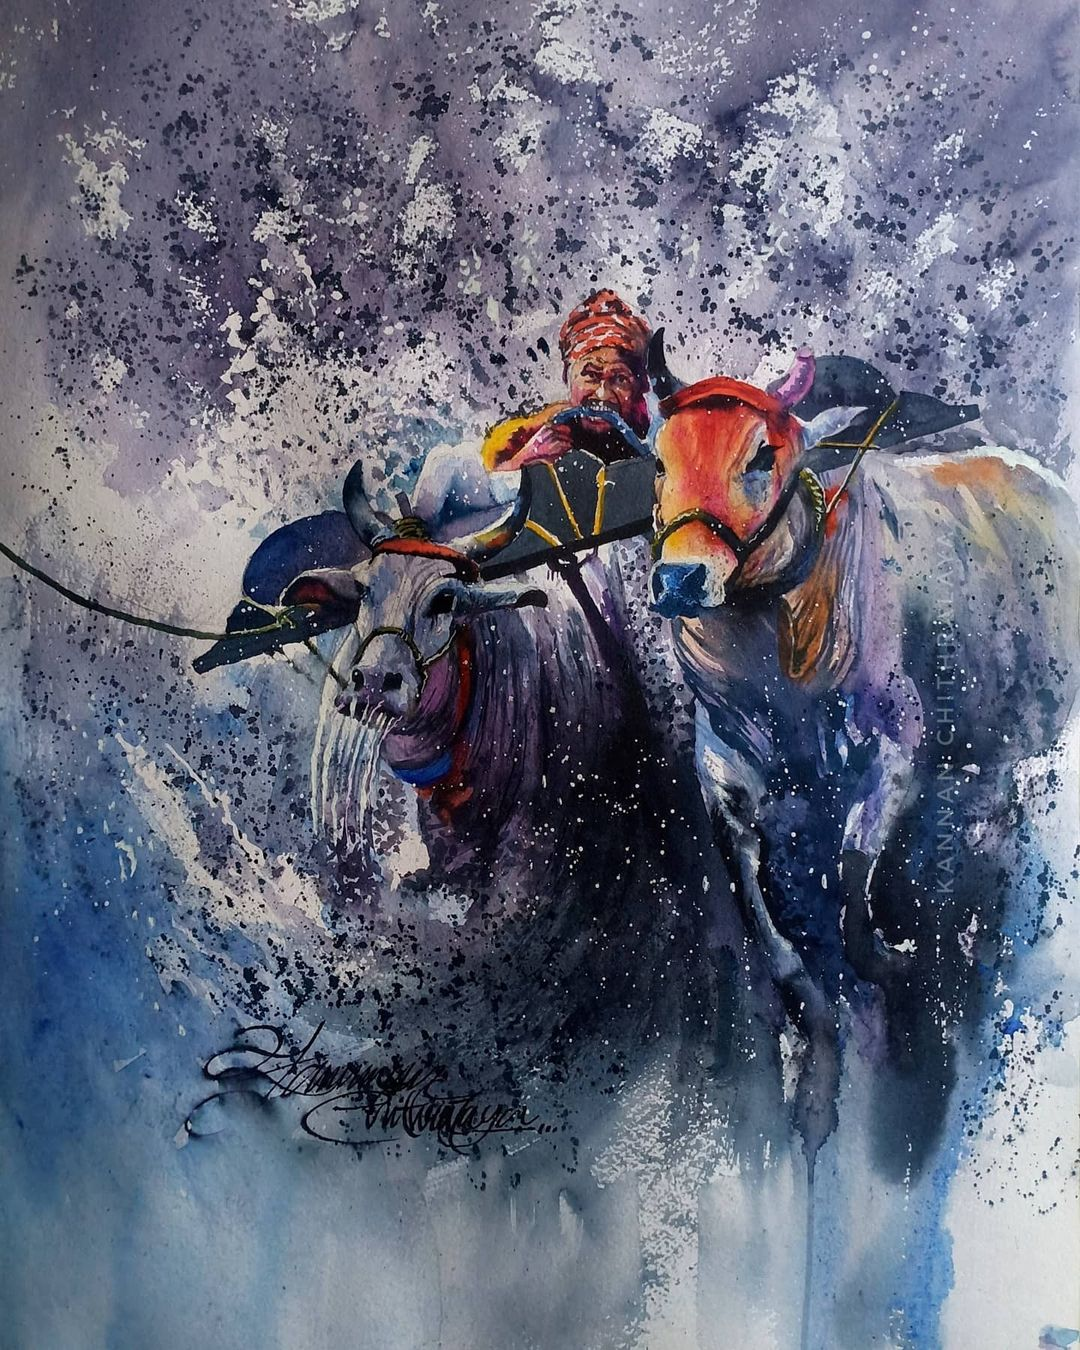 watercolor painting kambala by kannan chitralaya